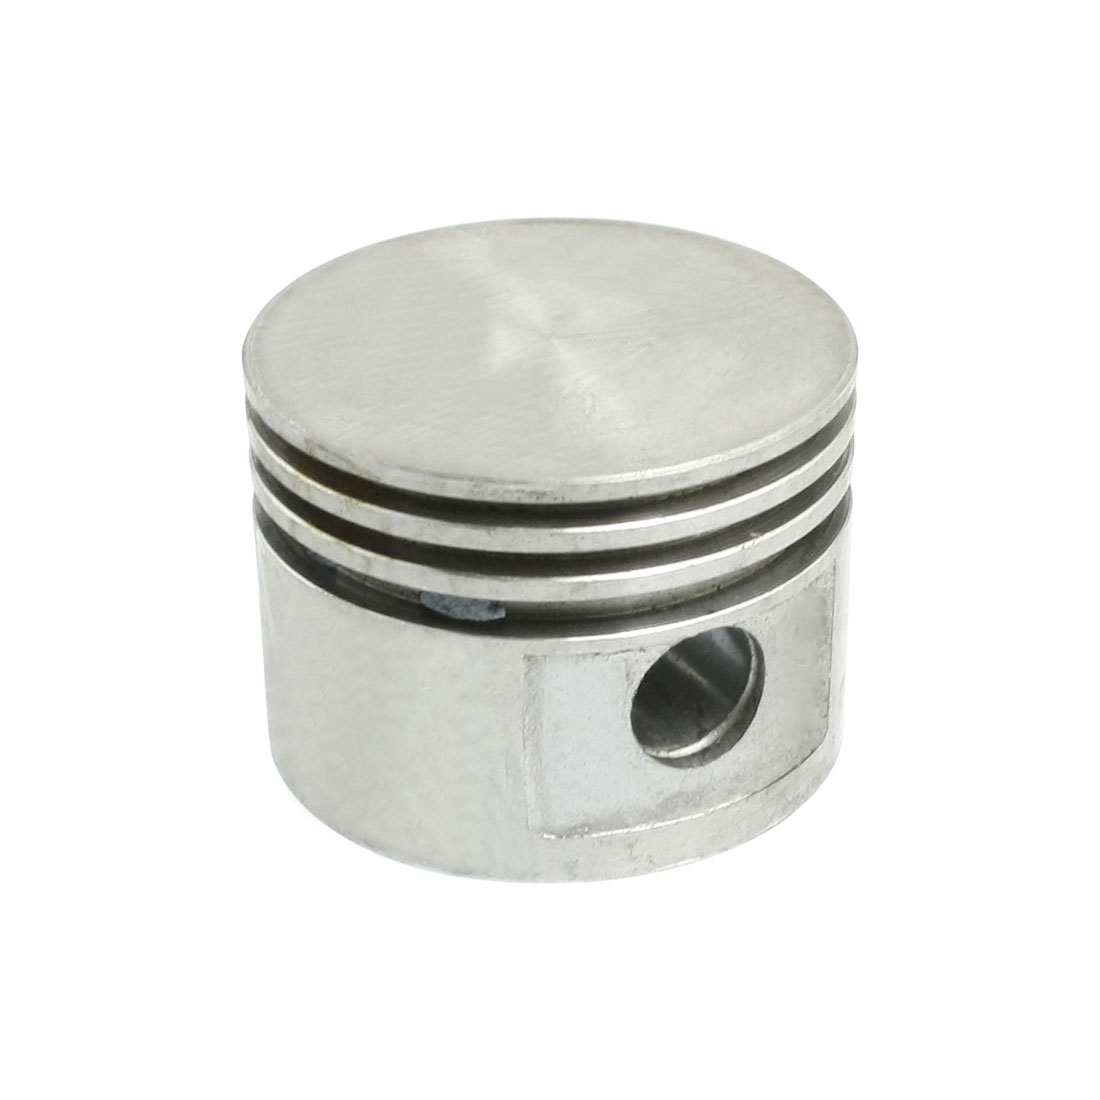 Air Compressor Fitting Part Silver Tone Aluminum Alloy 47mm Dia Piston